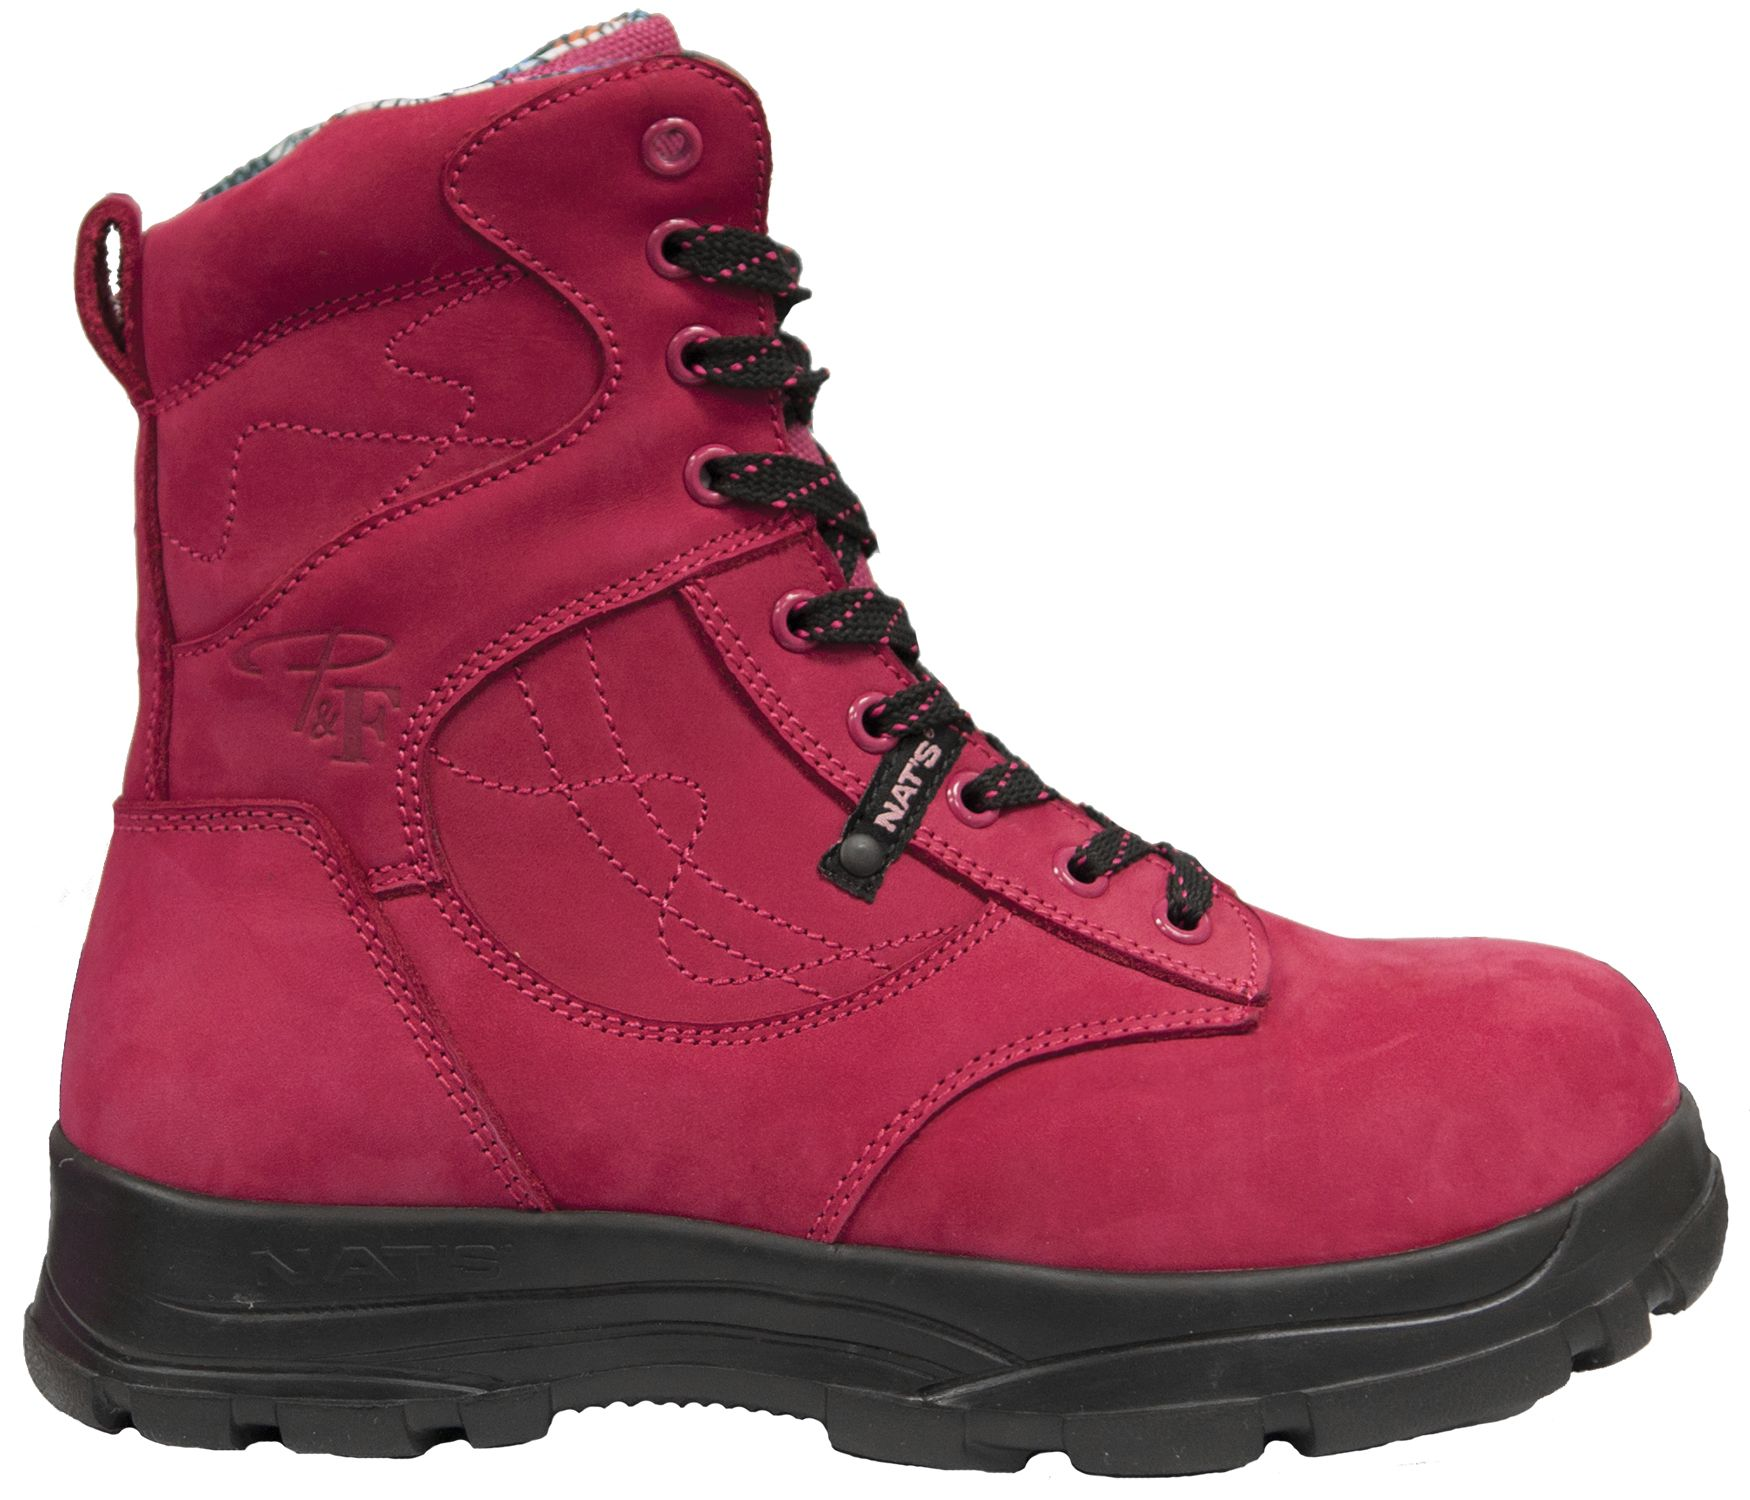 8 Inch Ultra Light Work Boot With Steel Toe Raspberry Boots Light Work Boots Work Boots